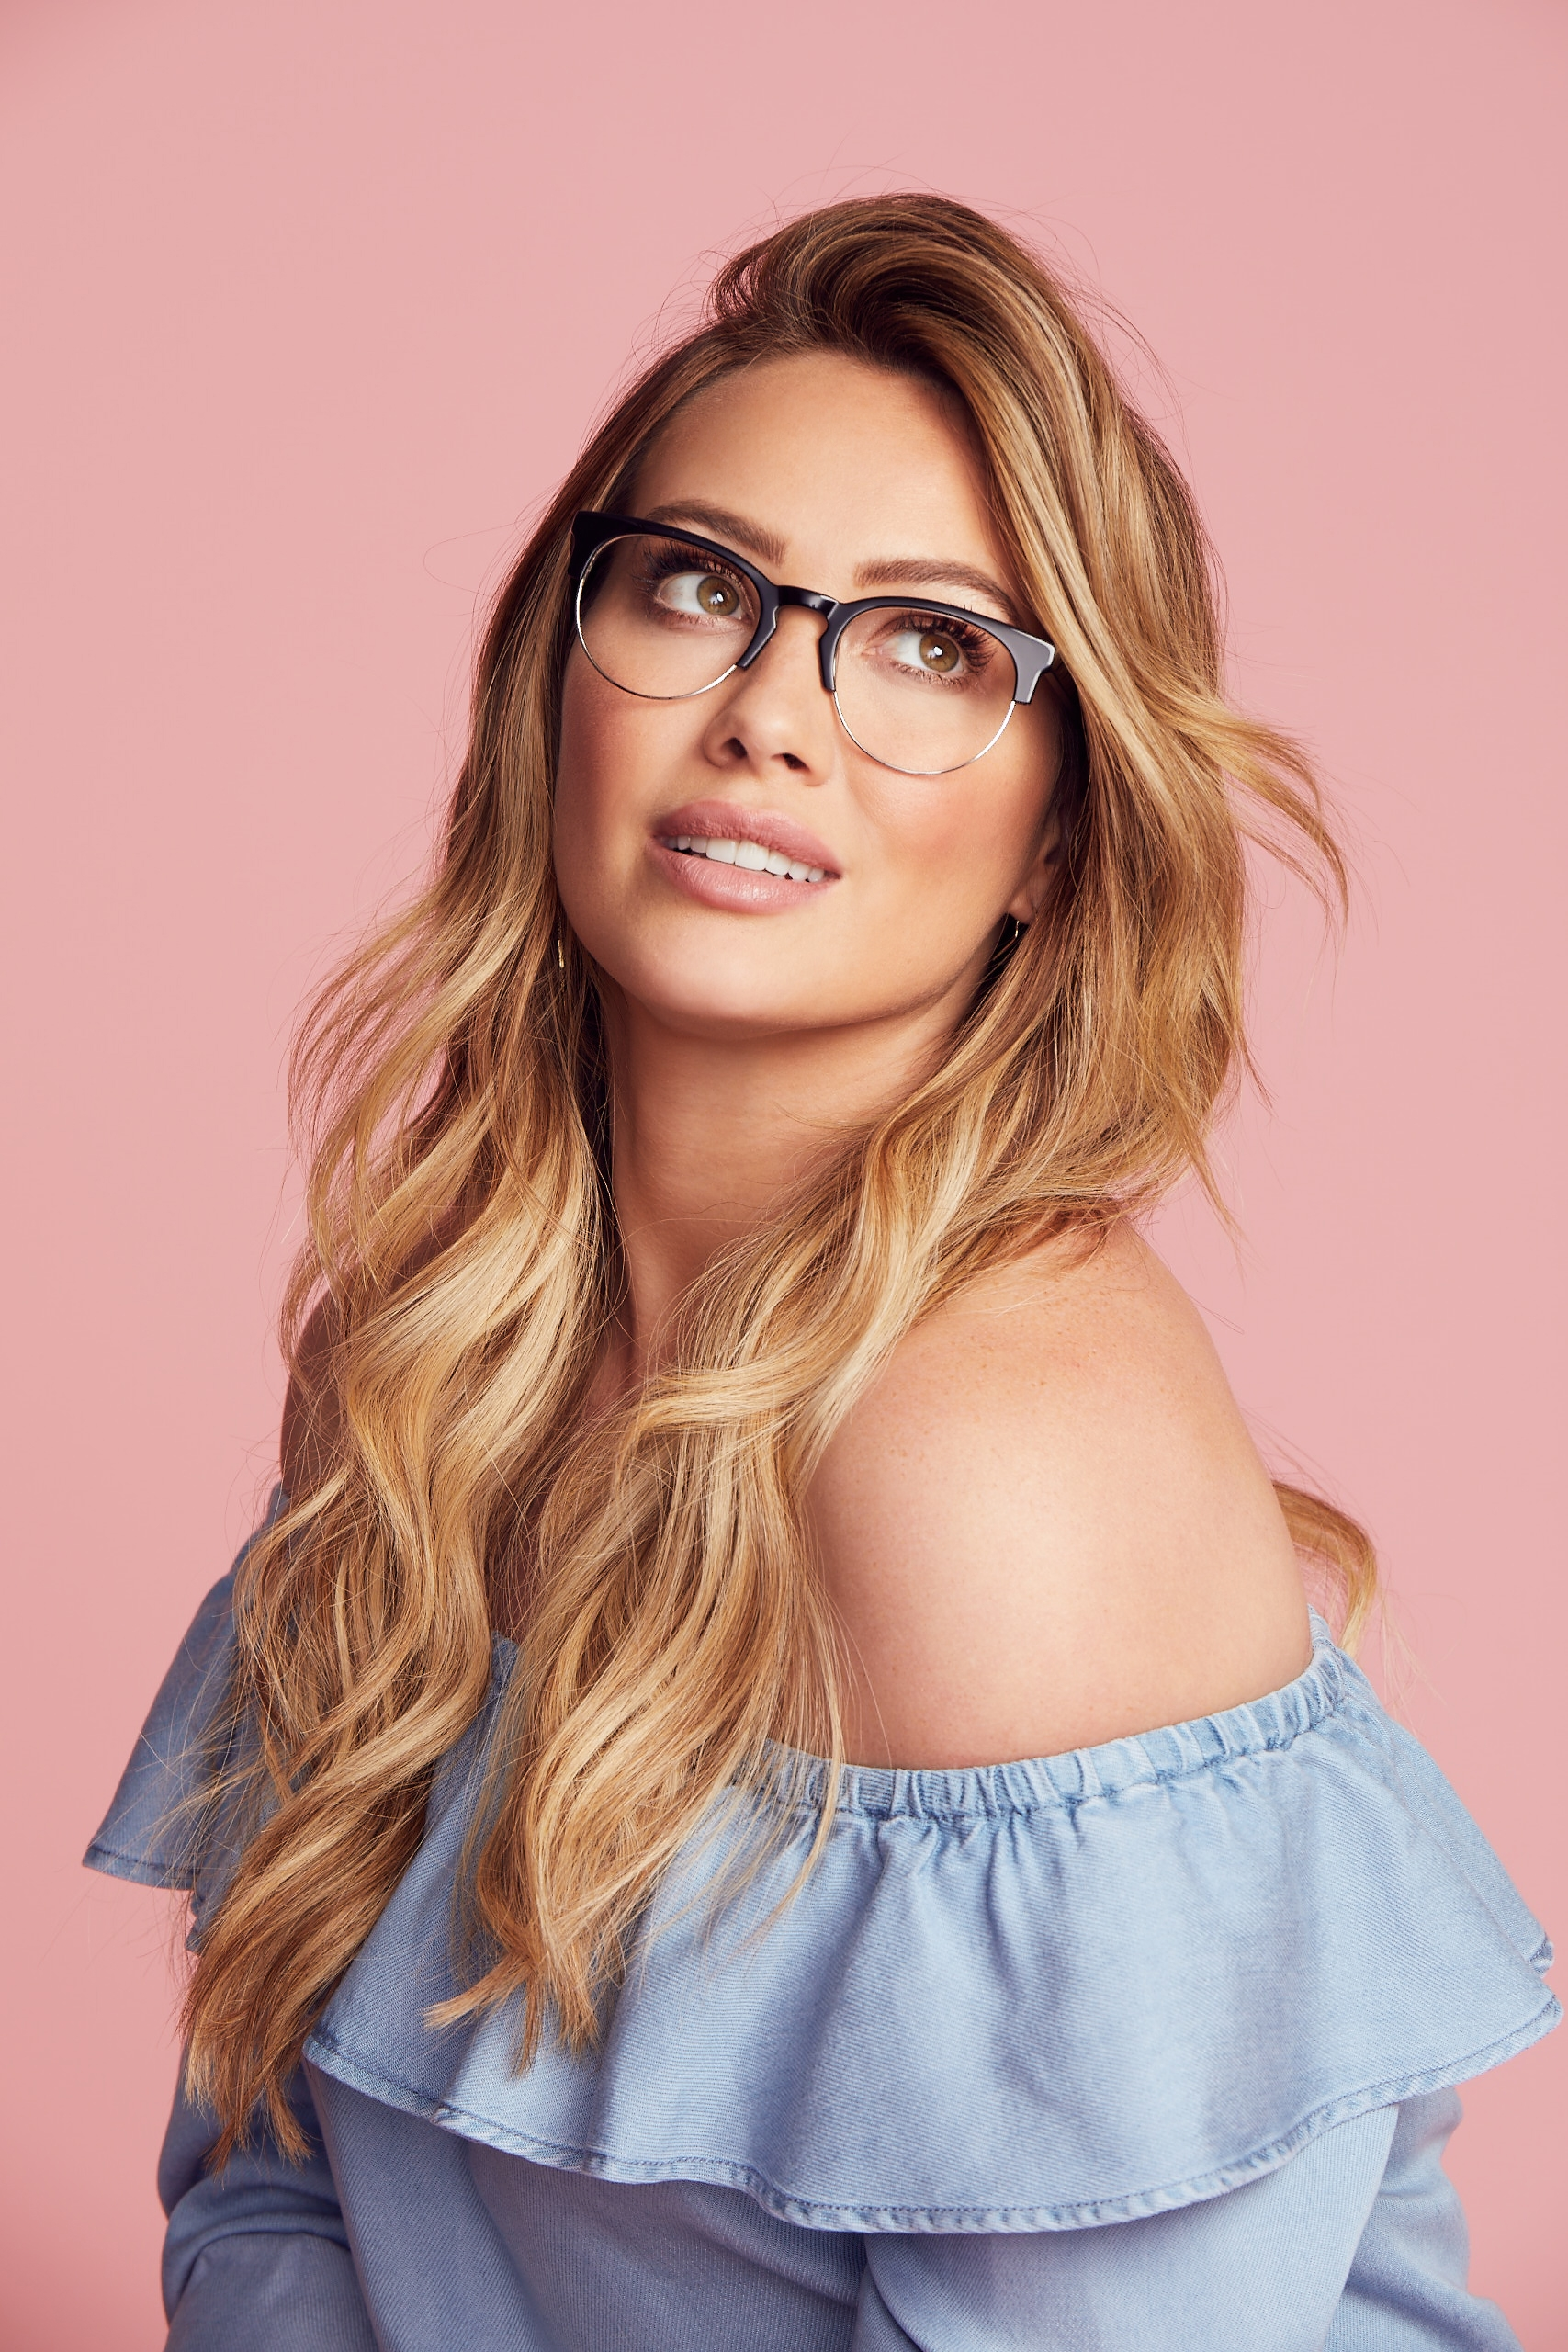 Muse x Hilary Duff Henrietta by GlassesUSA.com